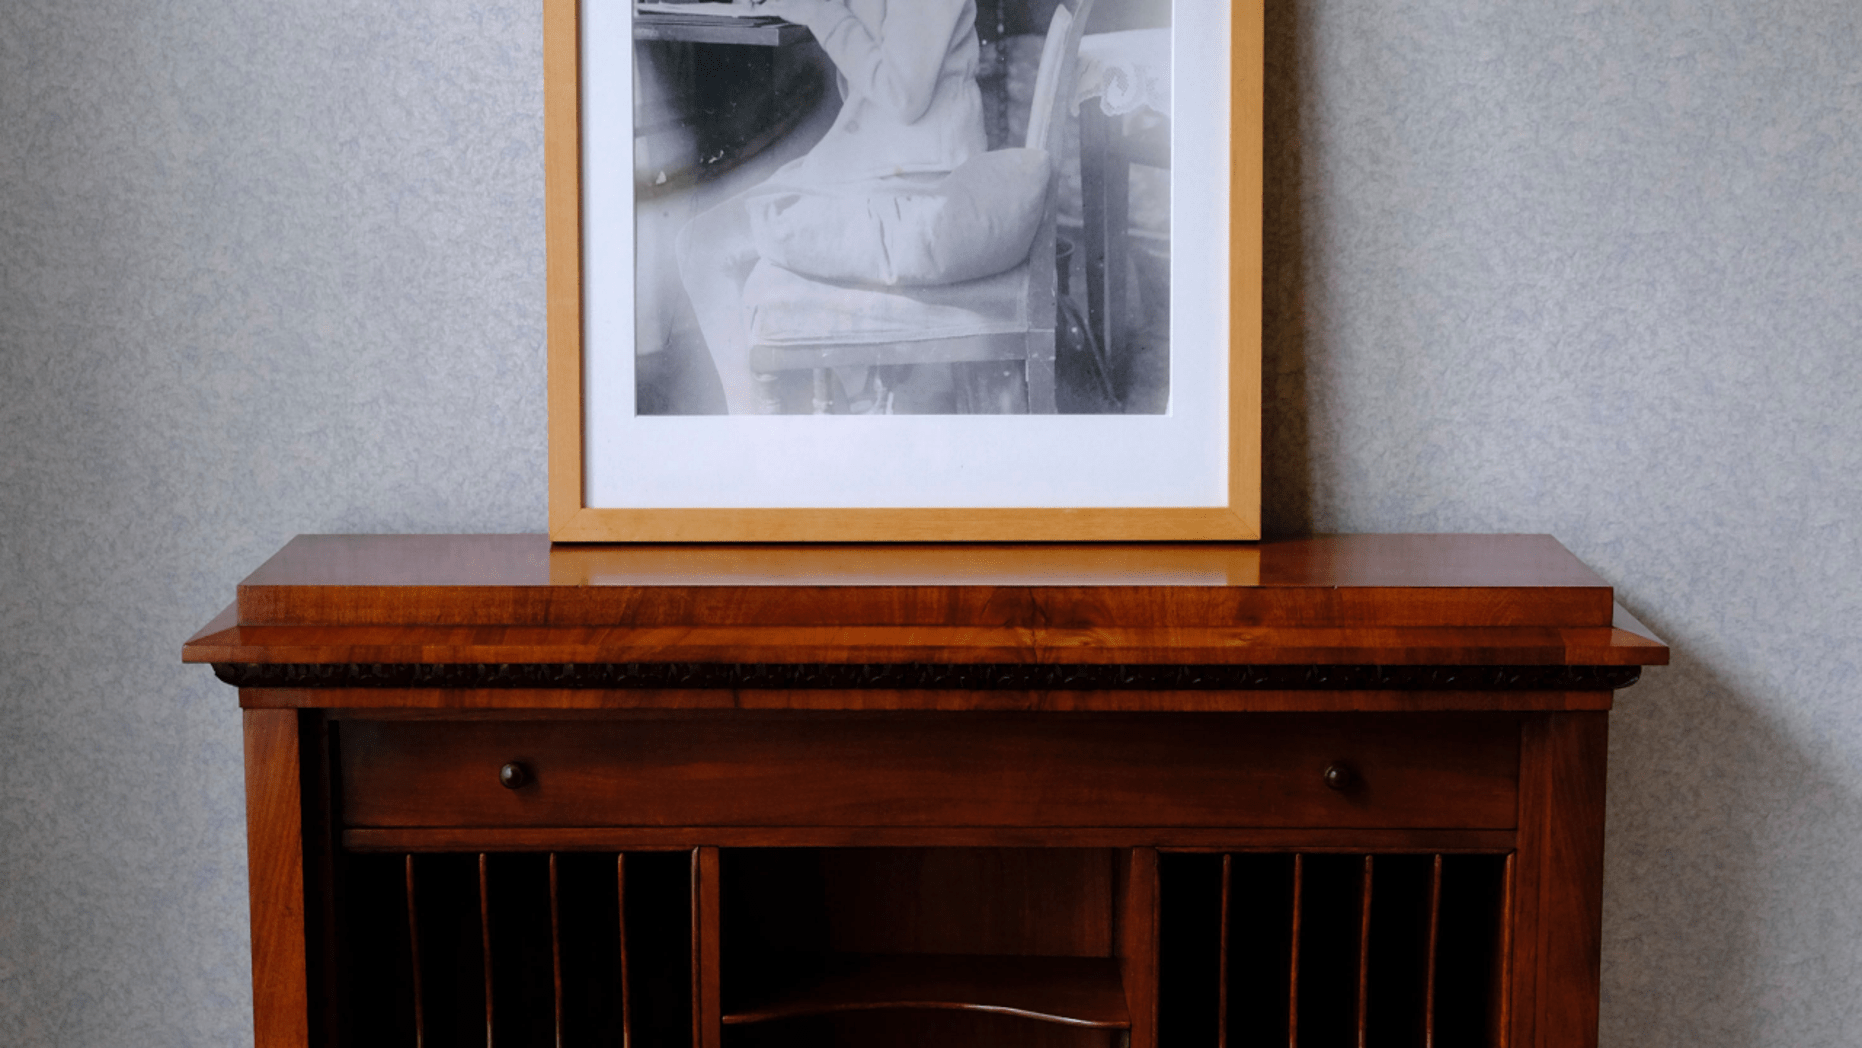 A photo of Anne Frank stands on a replica of the writing desk she once used in her family's former apartment in Amsterdam, during an event to mark what would have been Anne Frank's 90th birthday, in Amsterdam, Netherlands, Wednesday, June 12, 2019. On the day Anne Frank would have turned 90, the museum dedicated to keeping alive her story has brought together schoolchildren and two of the Jewish diarist's friends at the apartment where she lived with her family before going into hiding from Nazis who occupied the Netherlands during World War II. (AP Photo/Michael C. Corder)